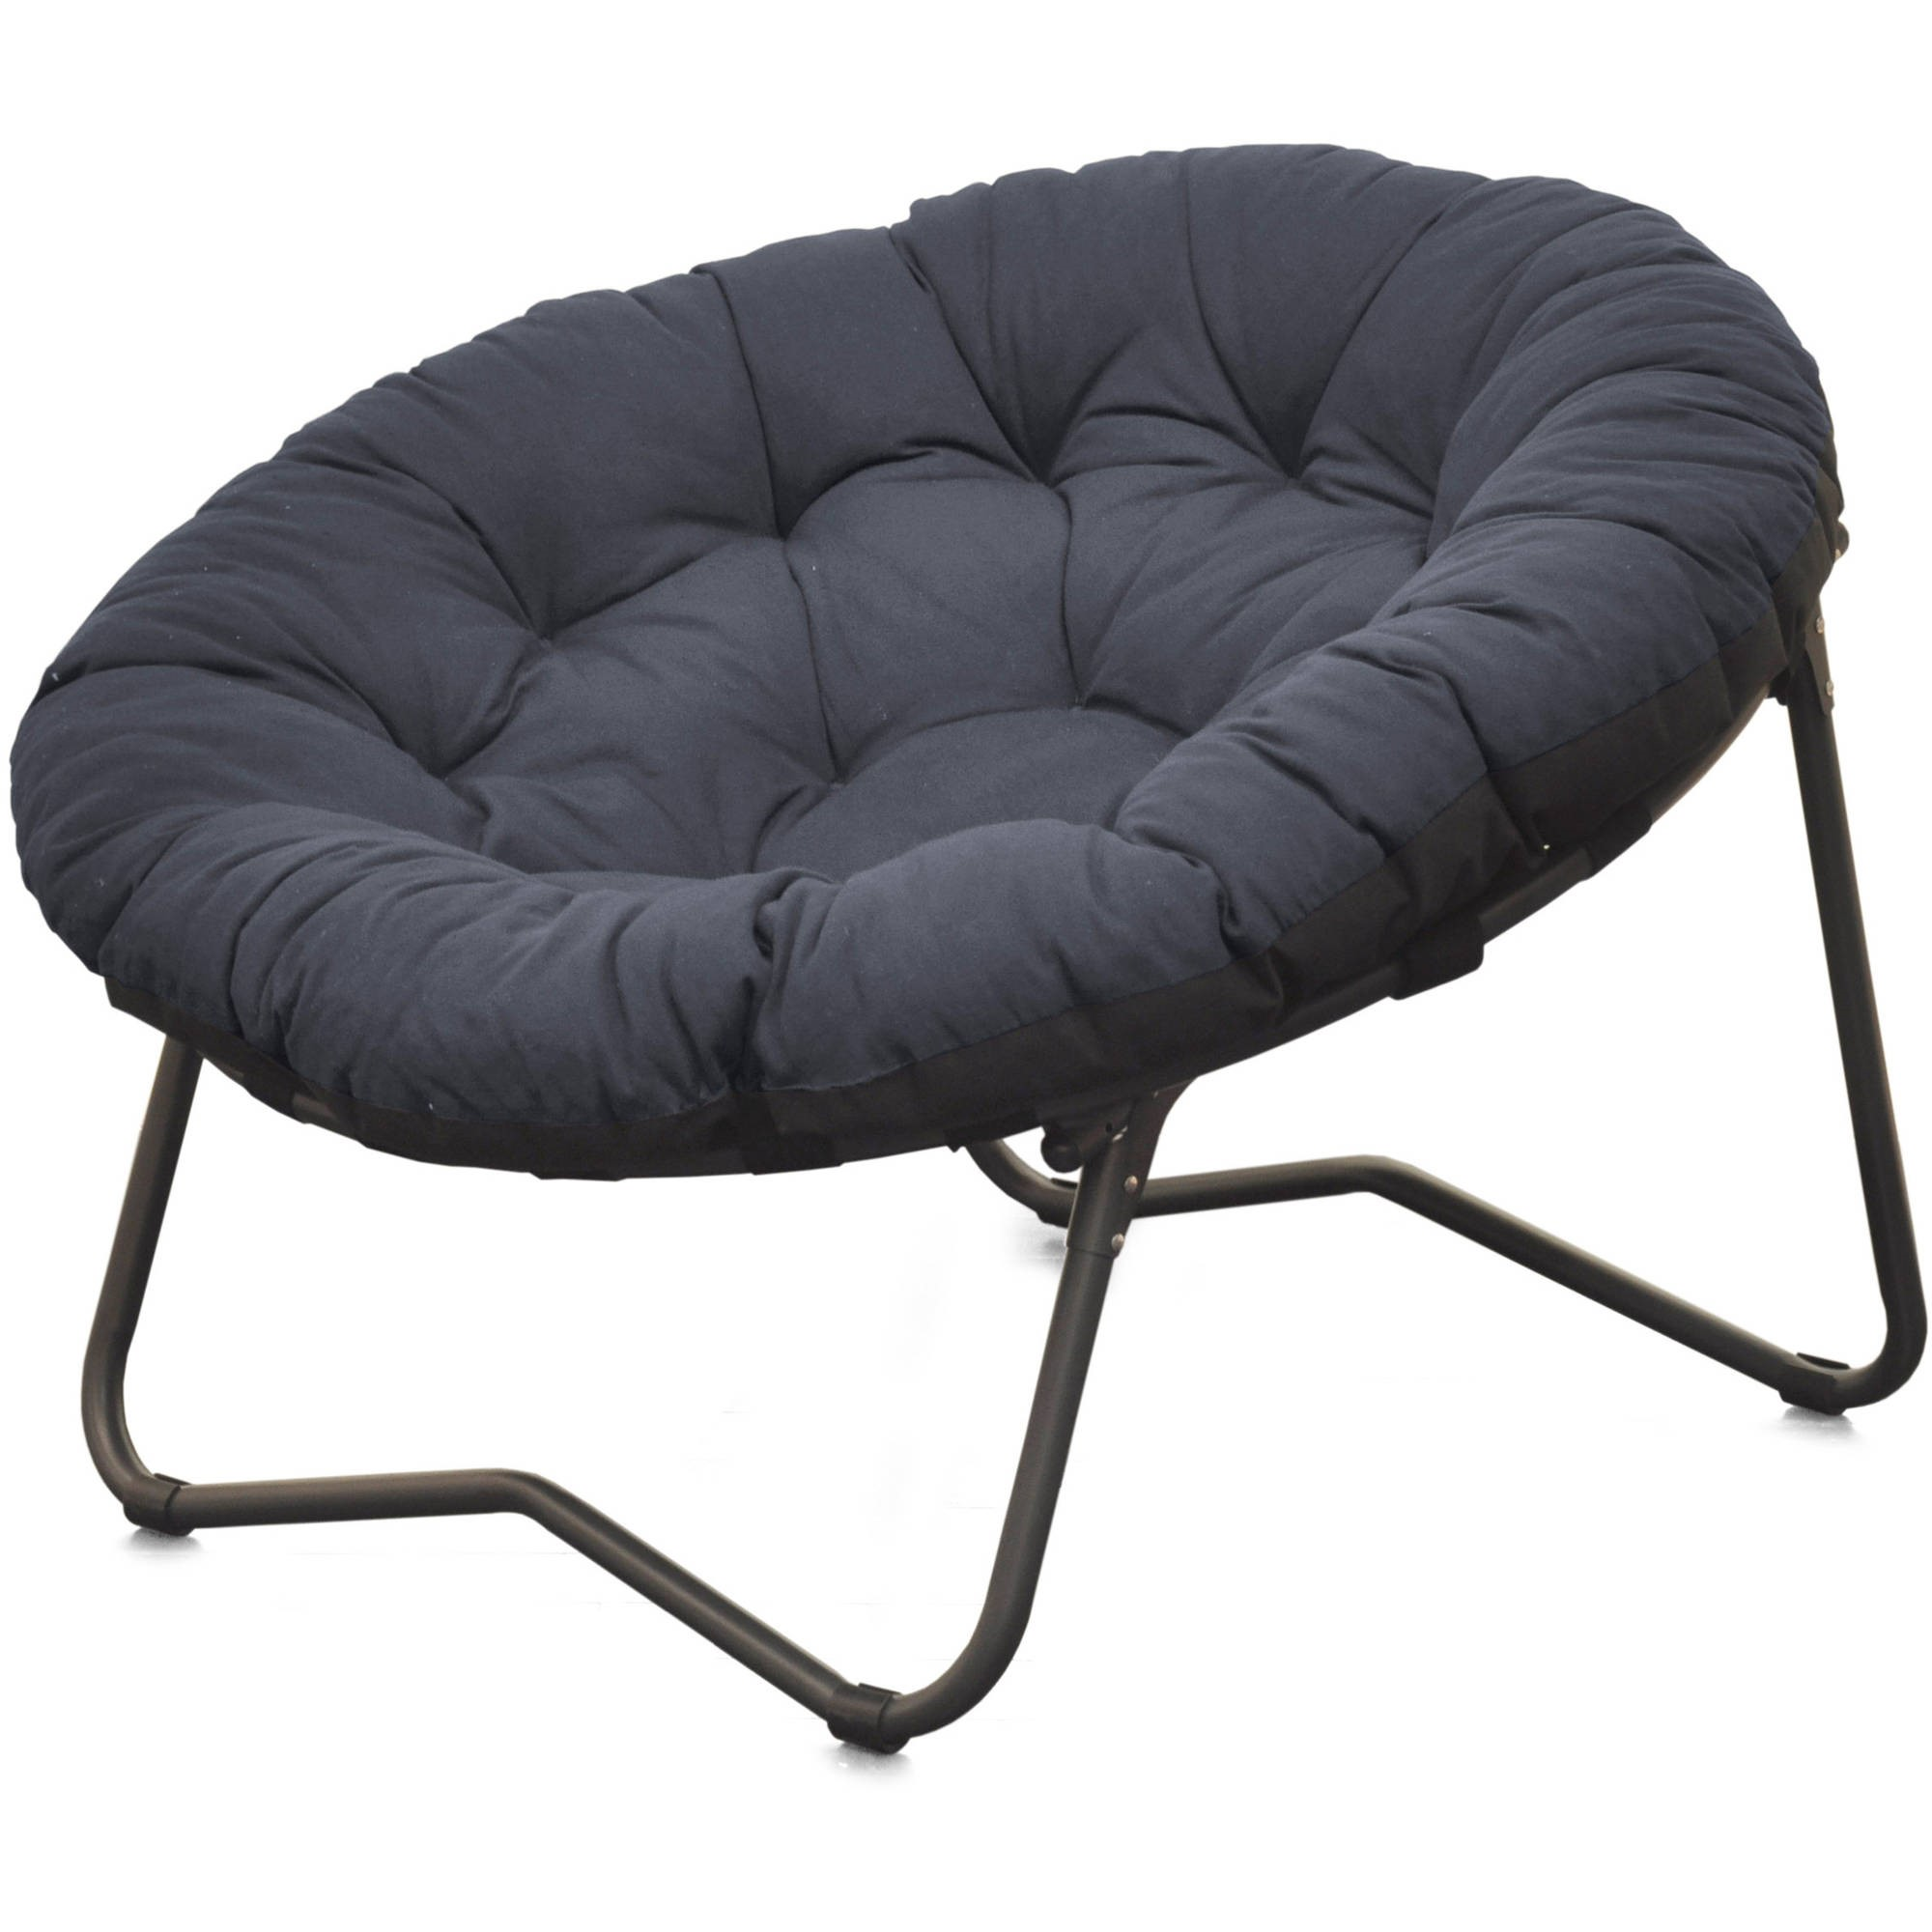 Genial Mainstays Folding Papasan Chair, Navy